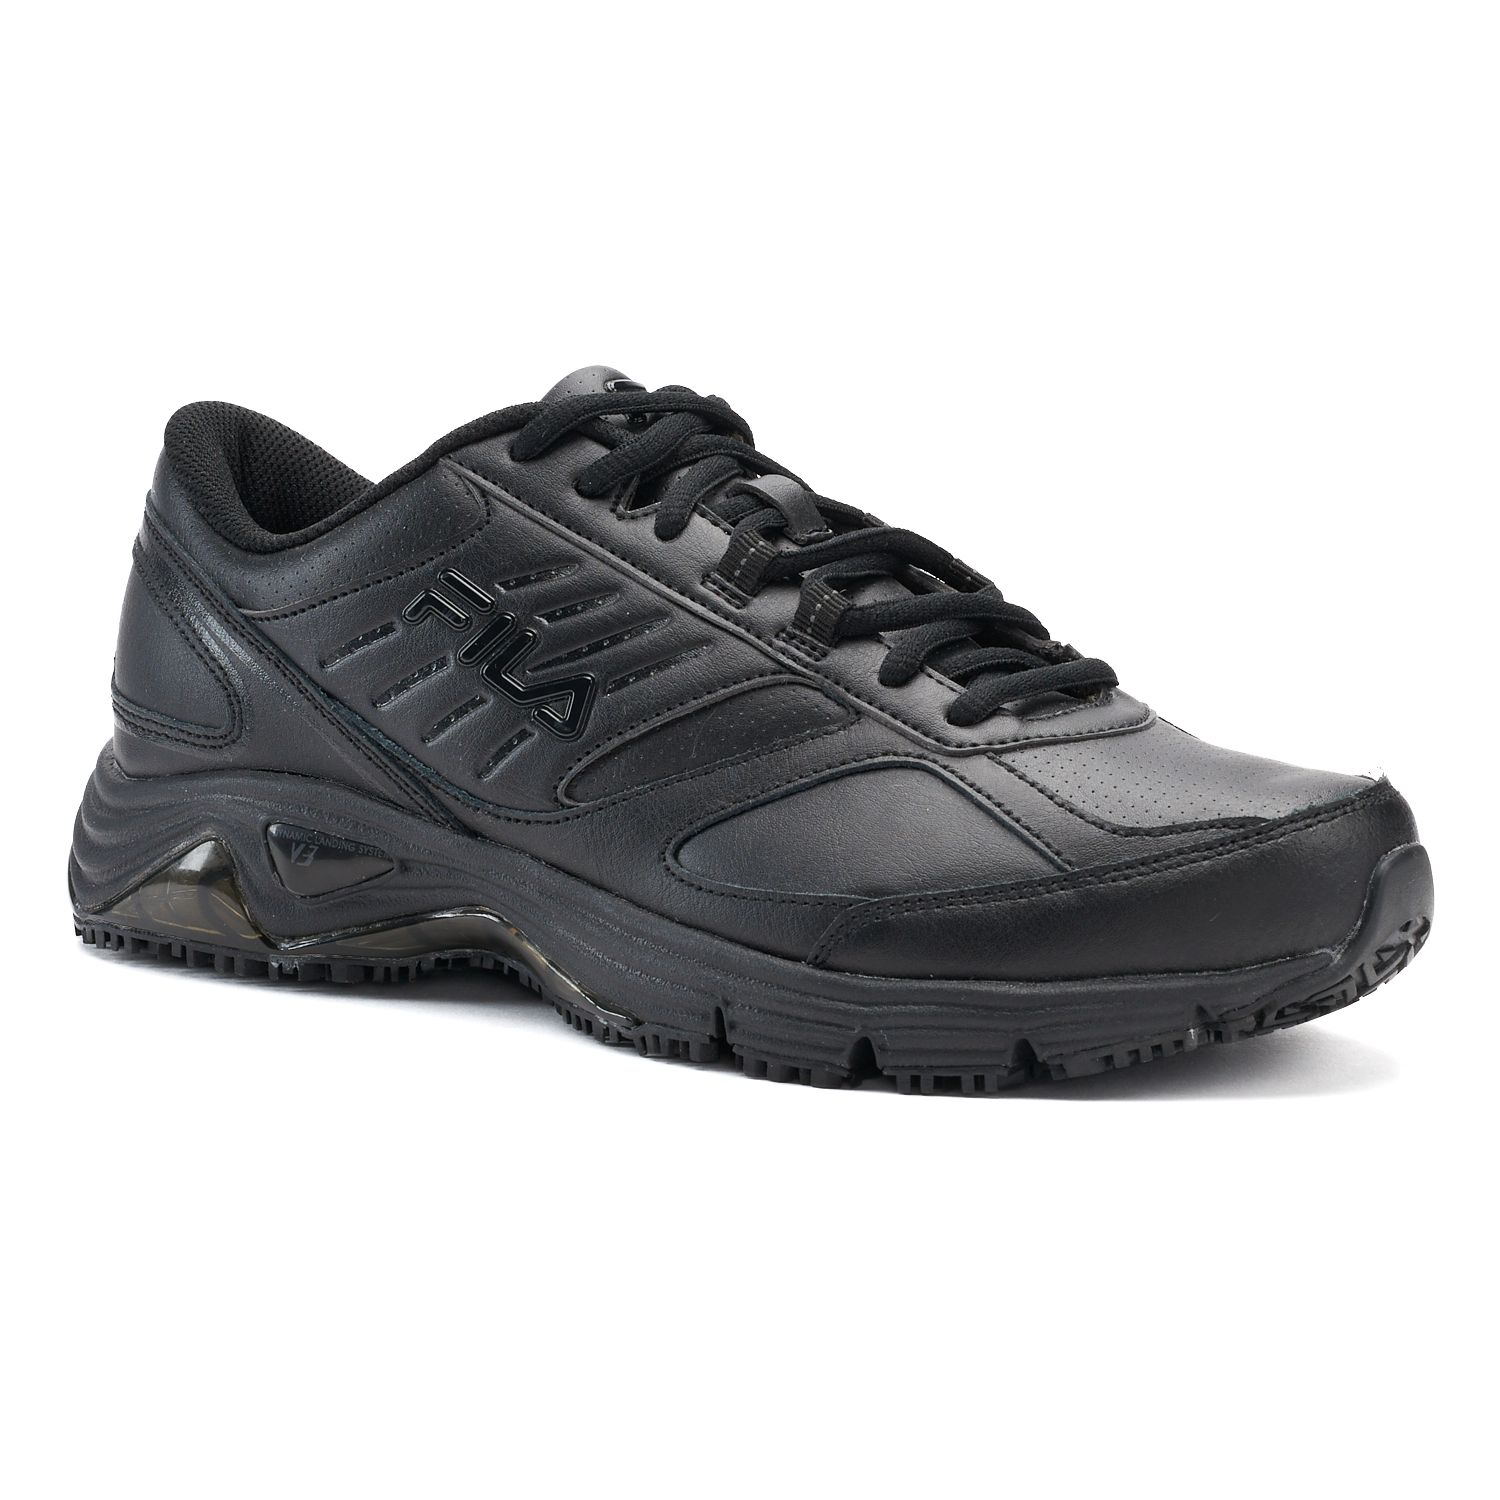 Women's composite toe safety shoes